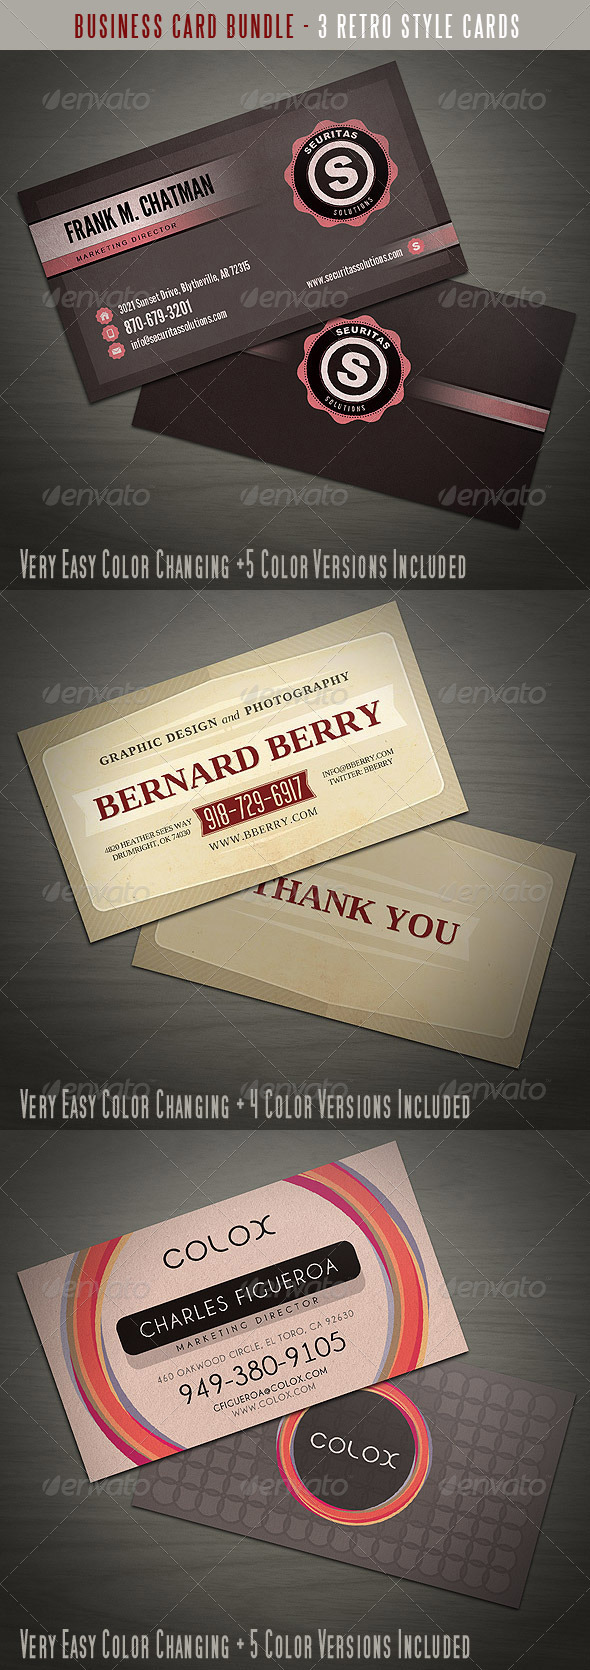 Retro Business Card Bundle - Retro/Vintage Business Cards